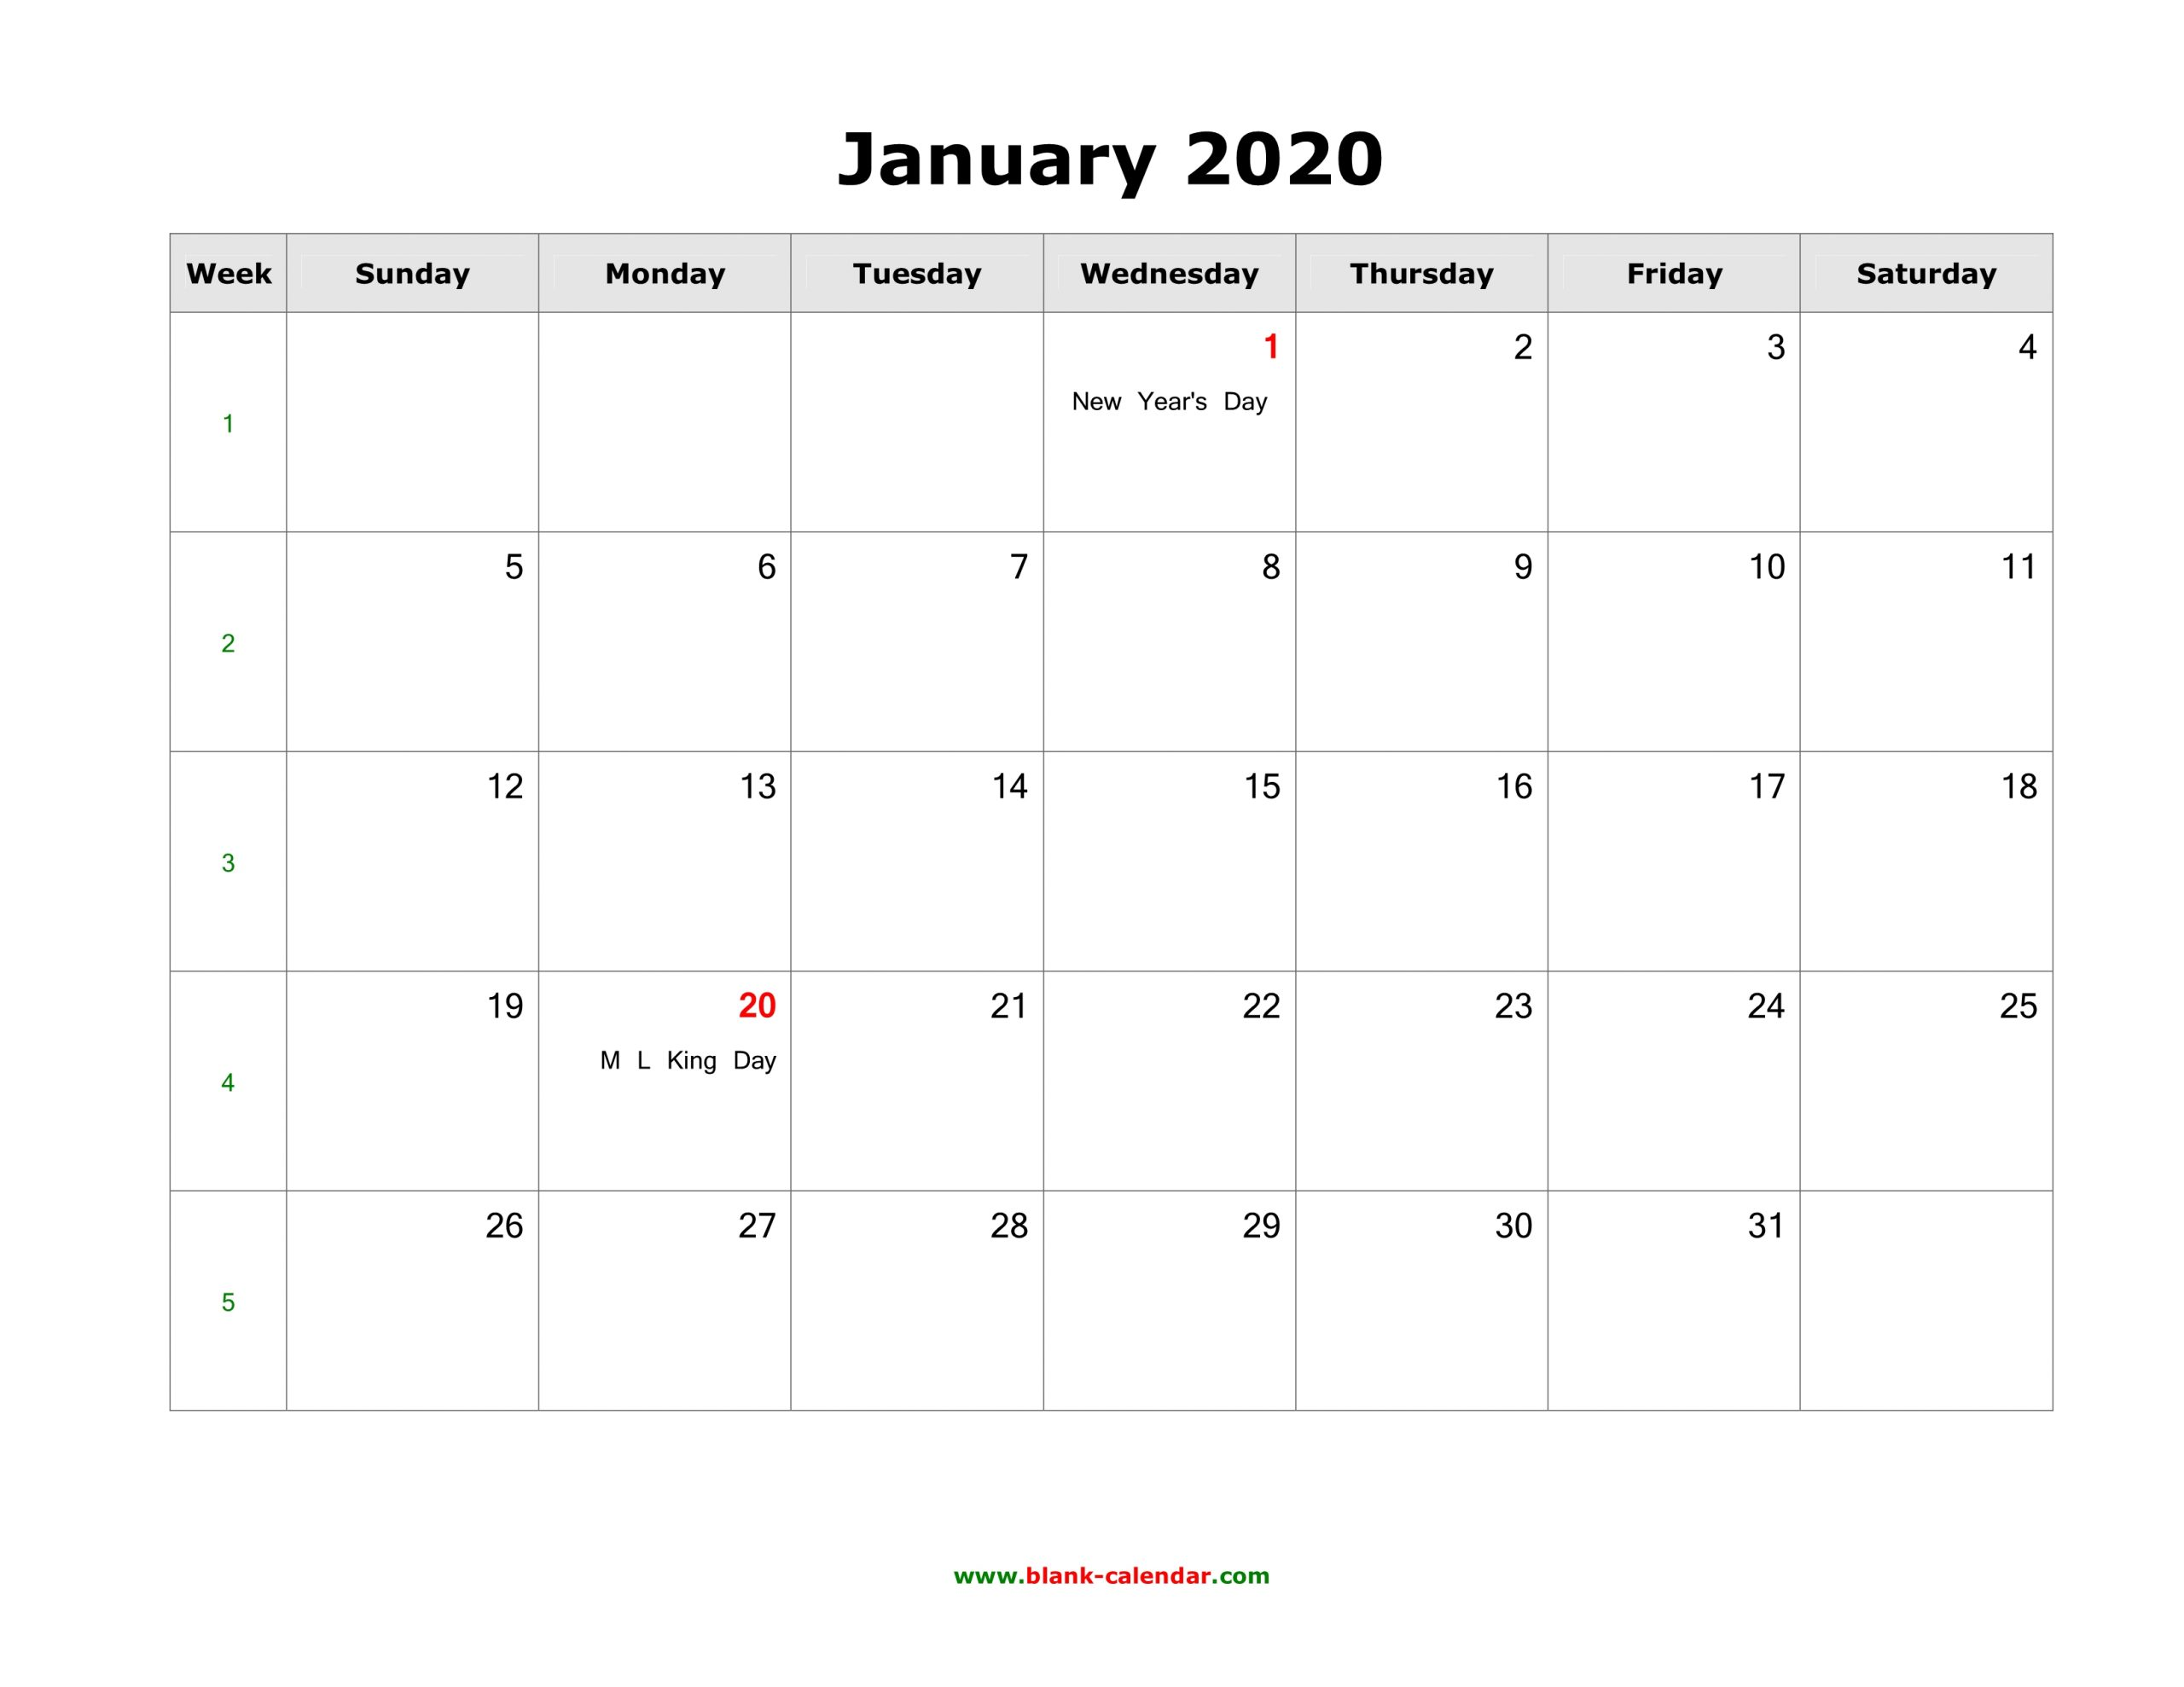 2020 Monthly Calendar Printable With Holidays - Togo.wpart.co